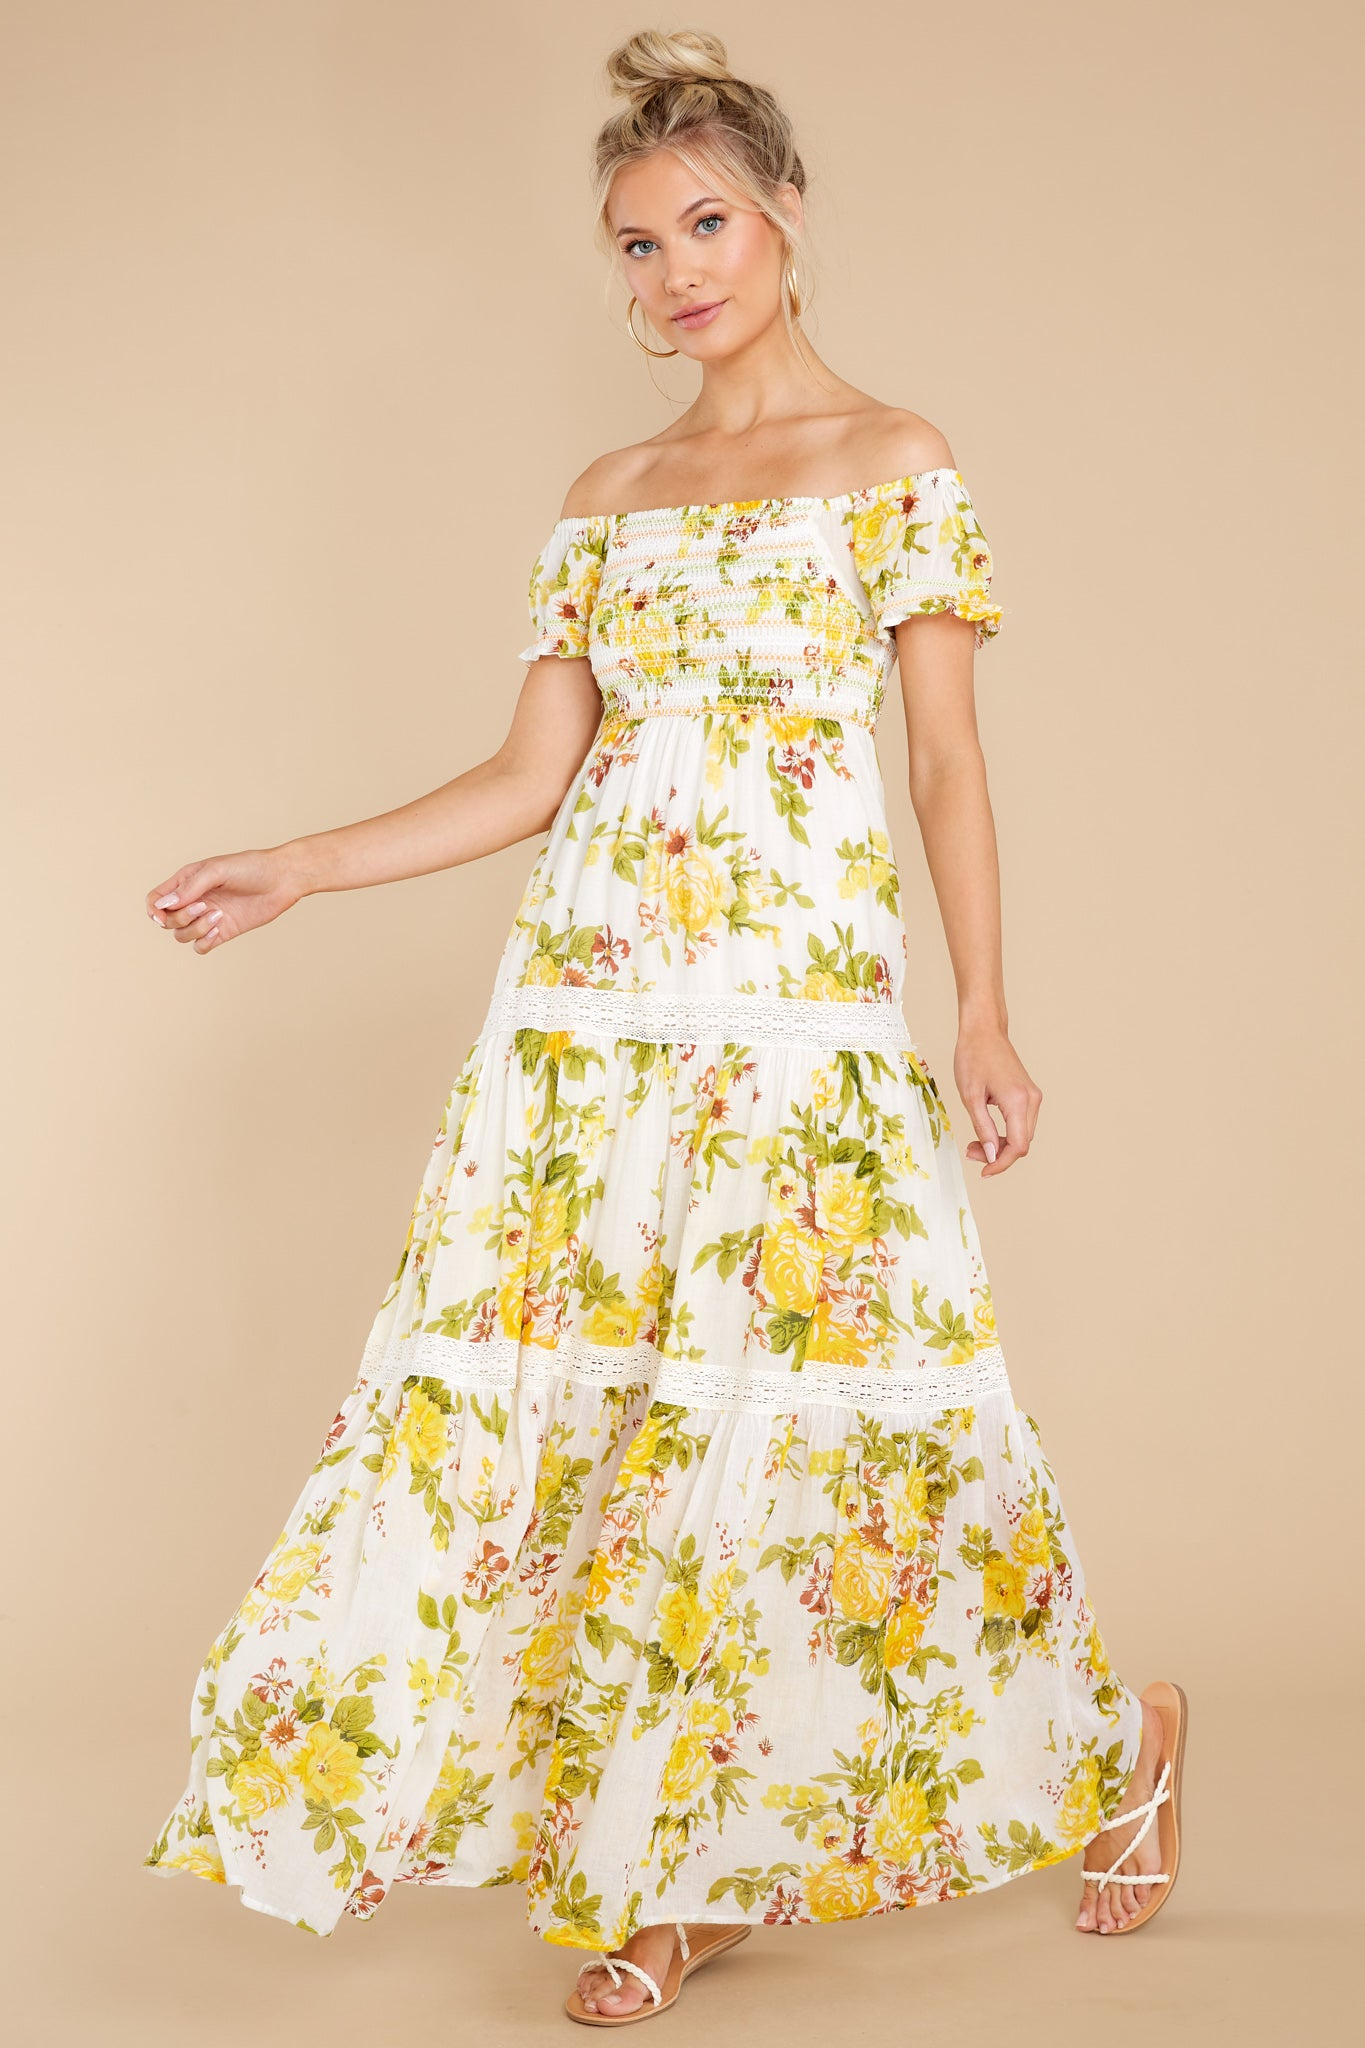 Cottagecore Dresses – Aesthetic, Granny, Vintage Aura Sunny Dreams White And Yellow Floral Print Maxi Dress $55.00 AT vintagedancer.com